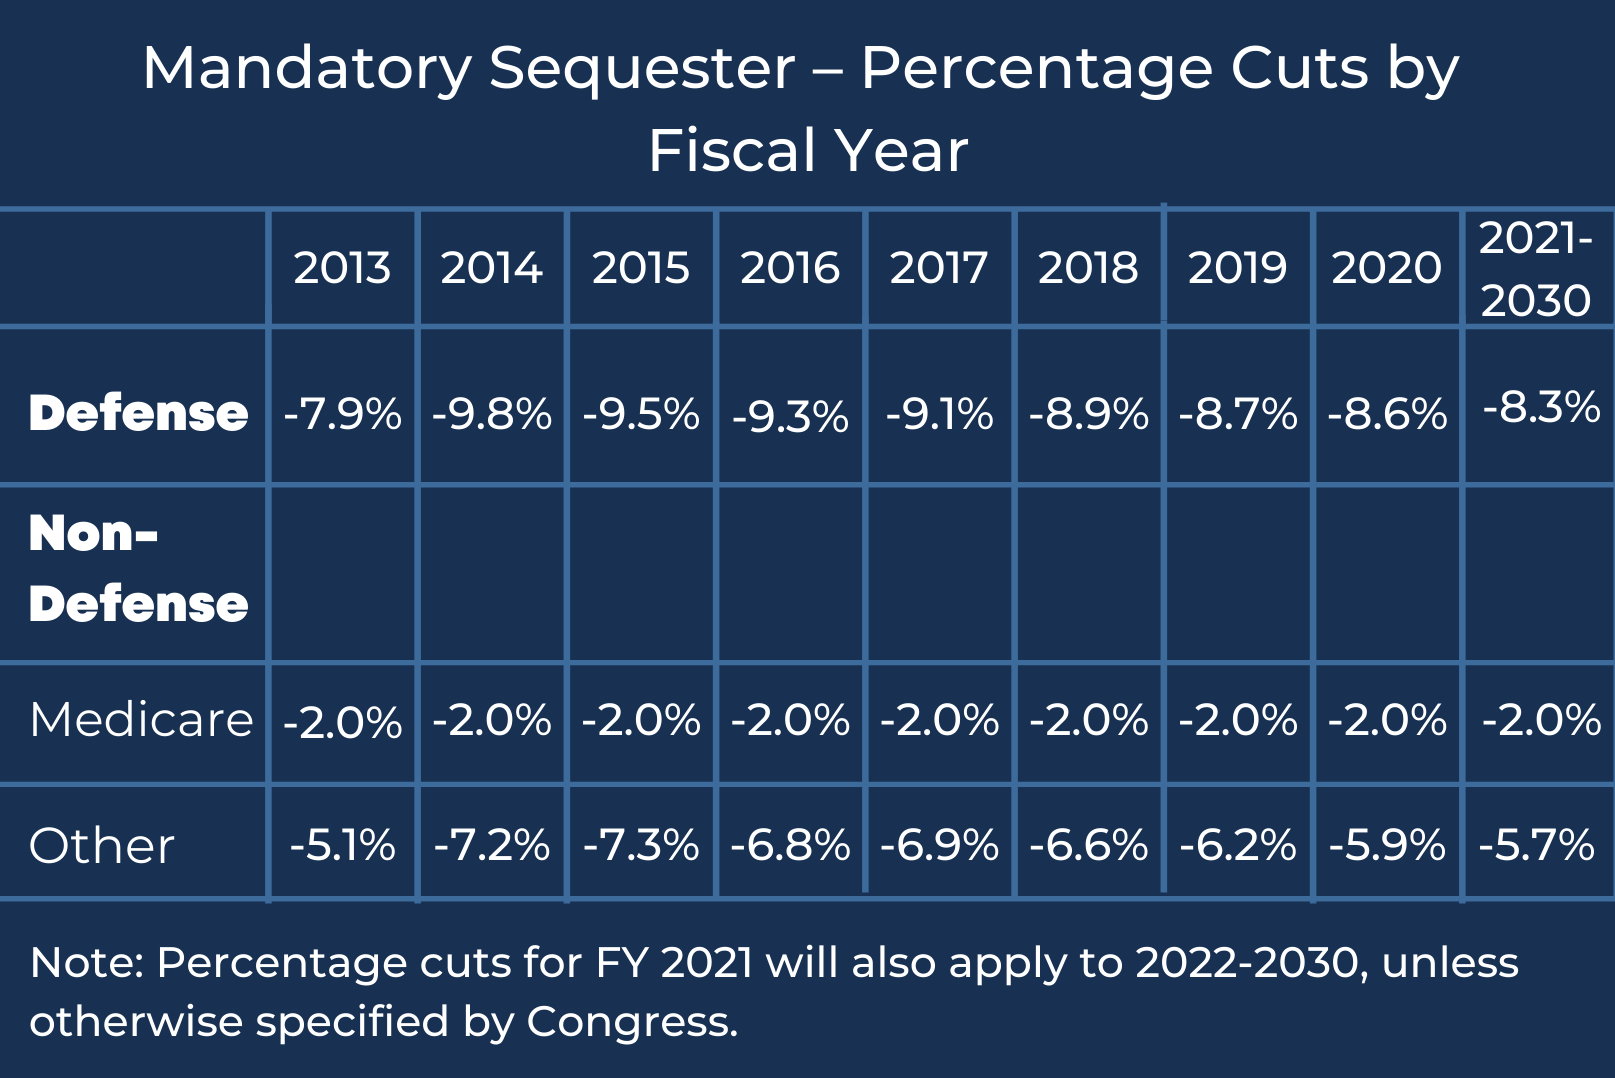 A chart outlines the mandatory sequester totals based on the percentage cuts by fiscal year.